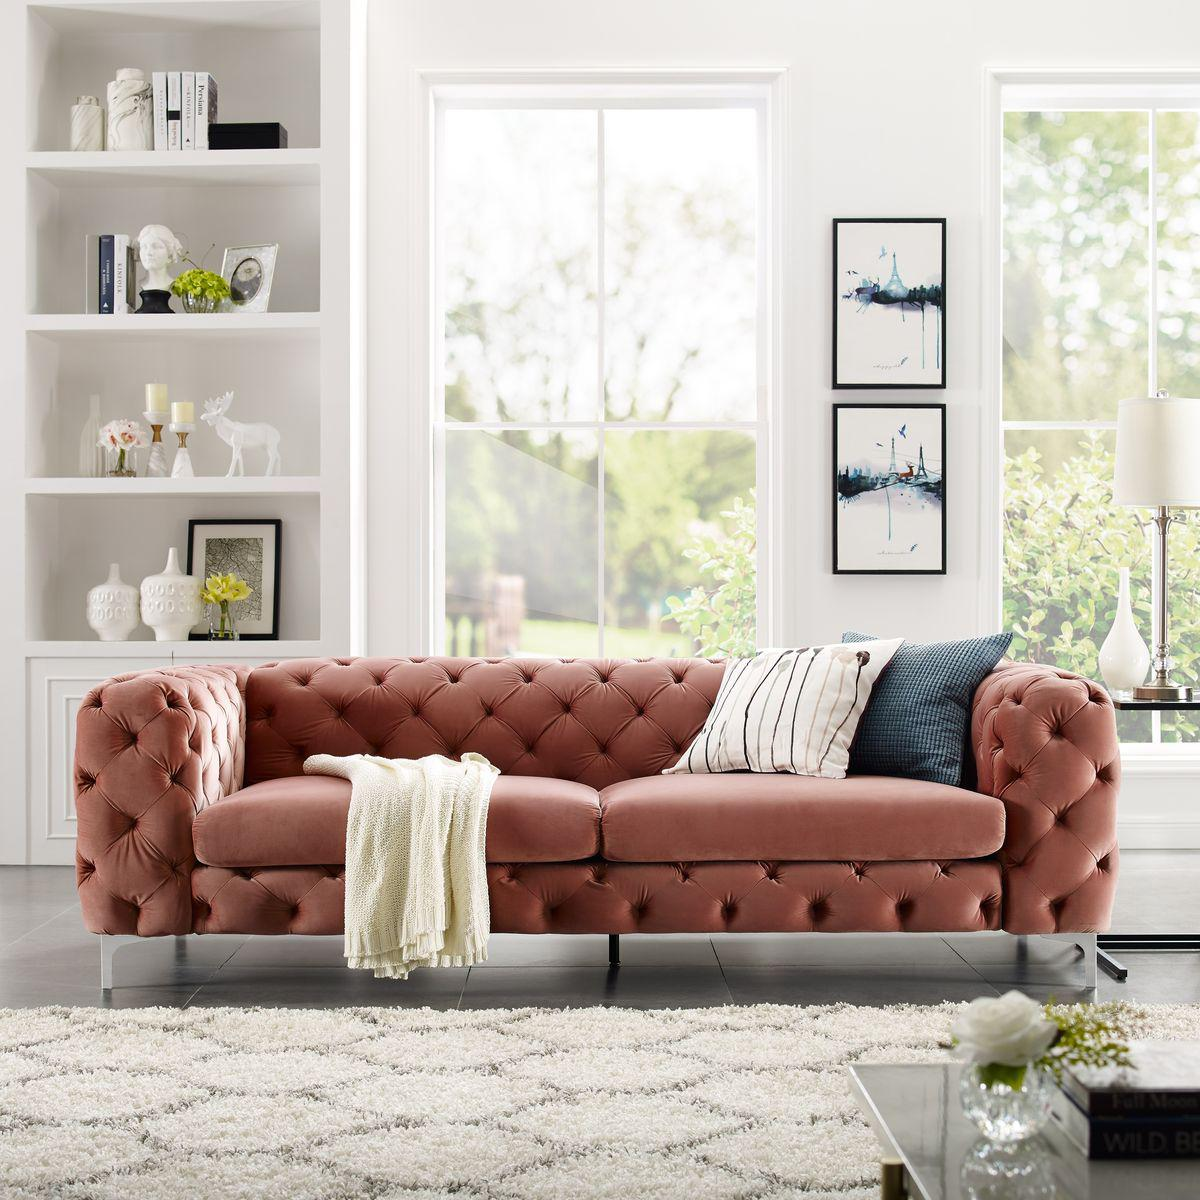 https://www.inventio.info.pl/25499/sofa-modern-38715-in.jpg